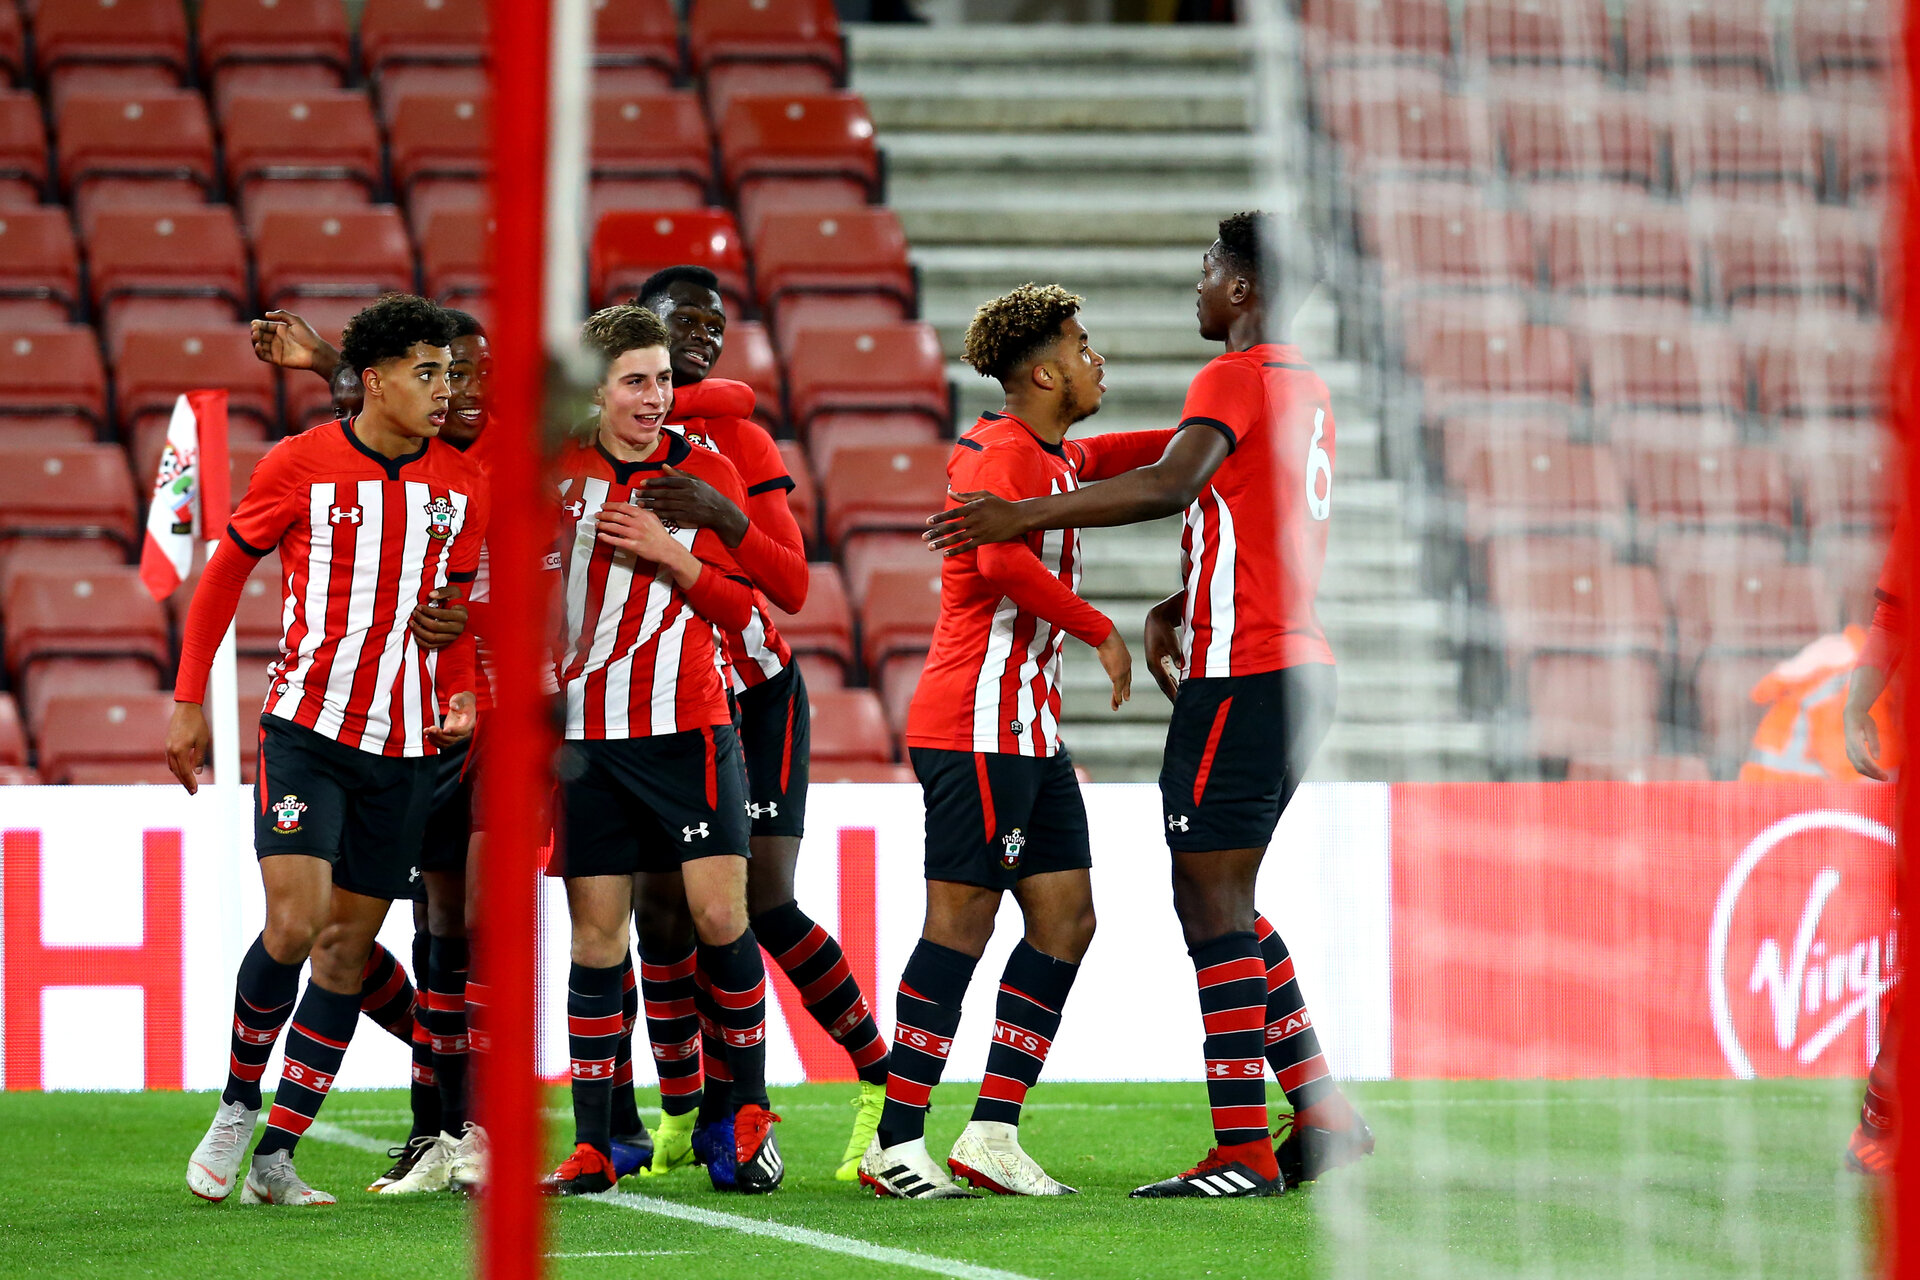 SOUTHAMPTON, ENGLAND - NOVEMBER 04: Christian Norton scores and celebrates (left) during the U18's FA Youth Cup match between Southampton FC and Rotherham United pictured at St Mary's Stadium on December 4, 2018 in Southampton, England. (Photo by James Bridle - Southampton FC/Southampton FC via Getty Images)